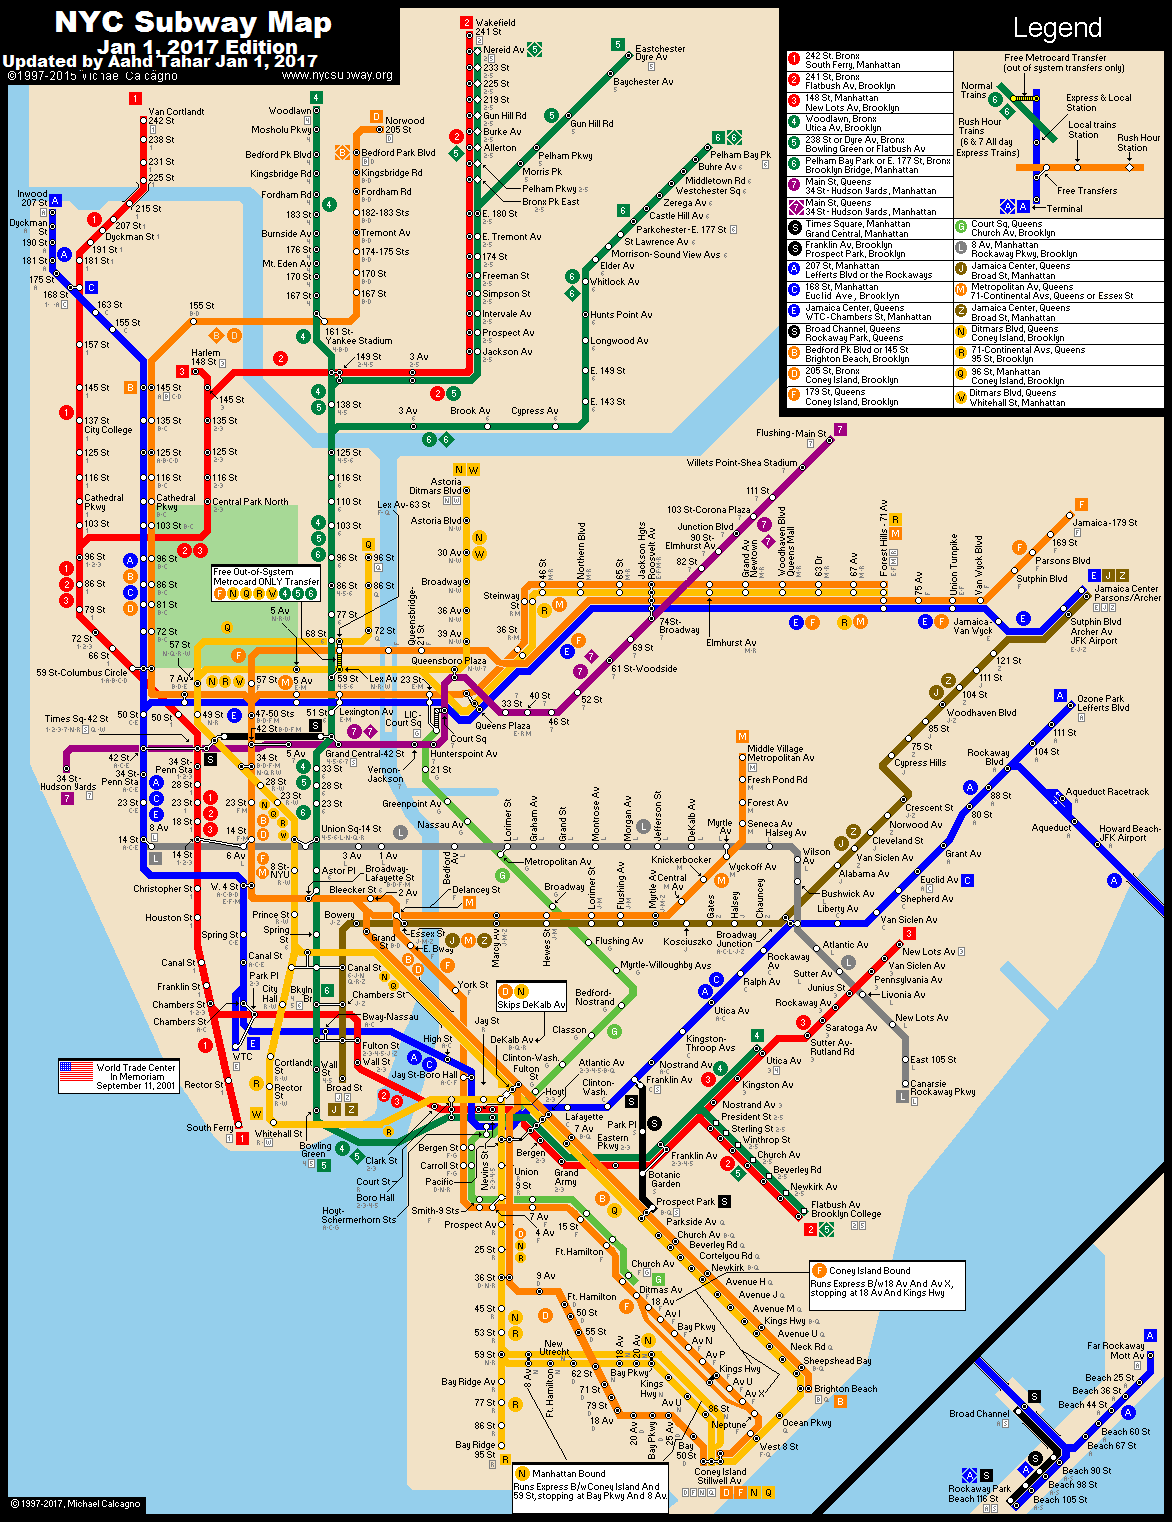 nycsubwayorg New York City Subway Route Map by Michael Calcagno – Map New York City Subway